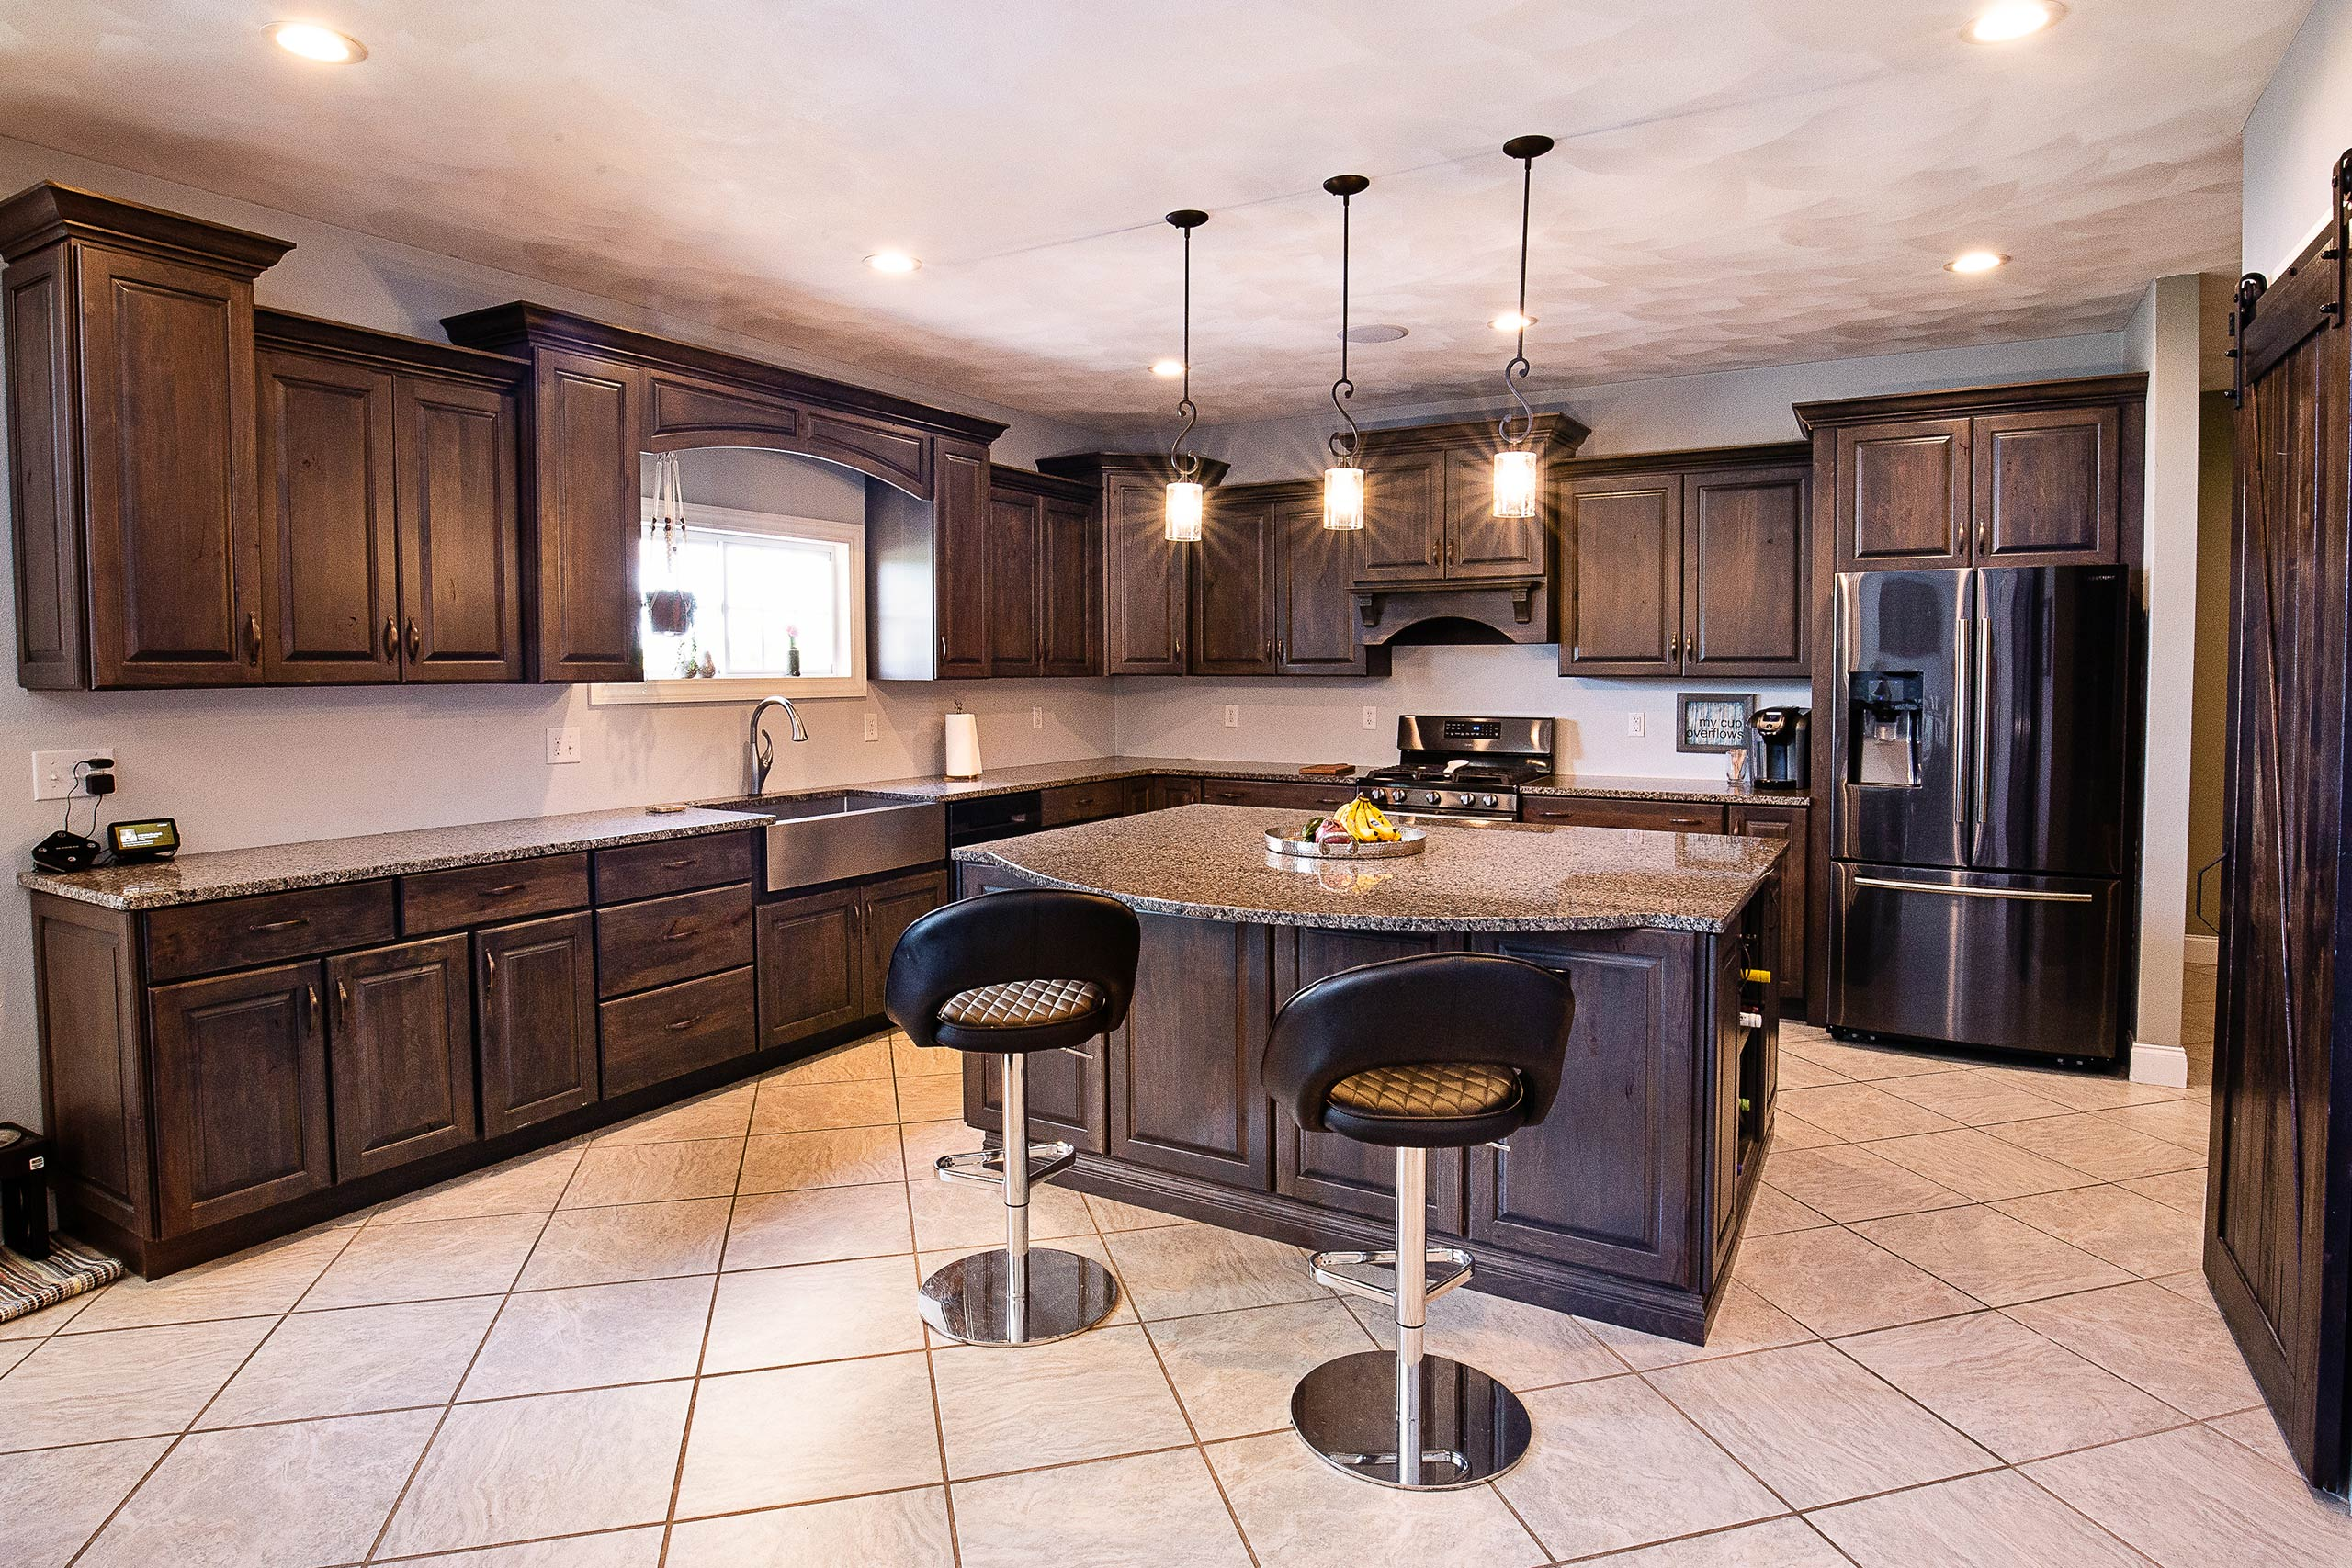 Kitchen Cabinets | Columbia IL 62236